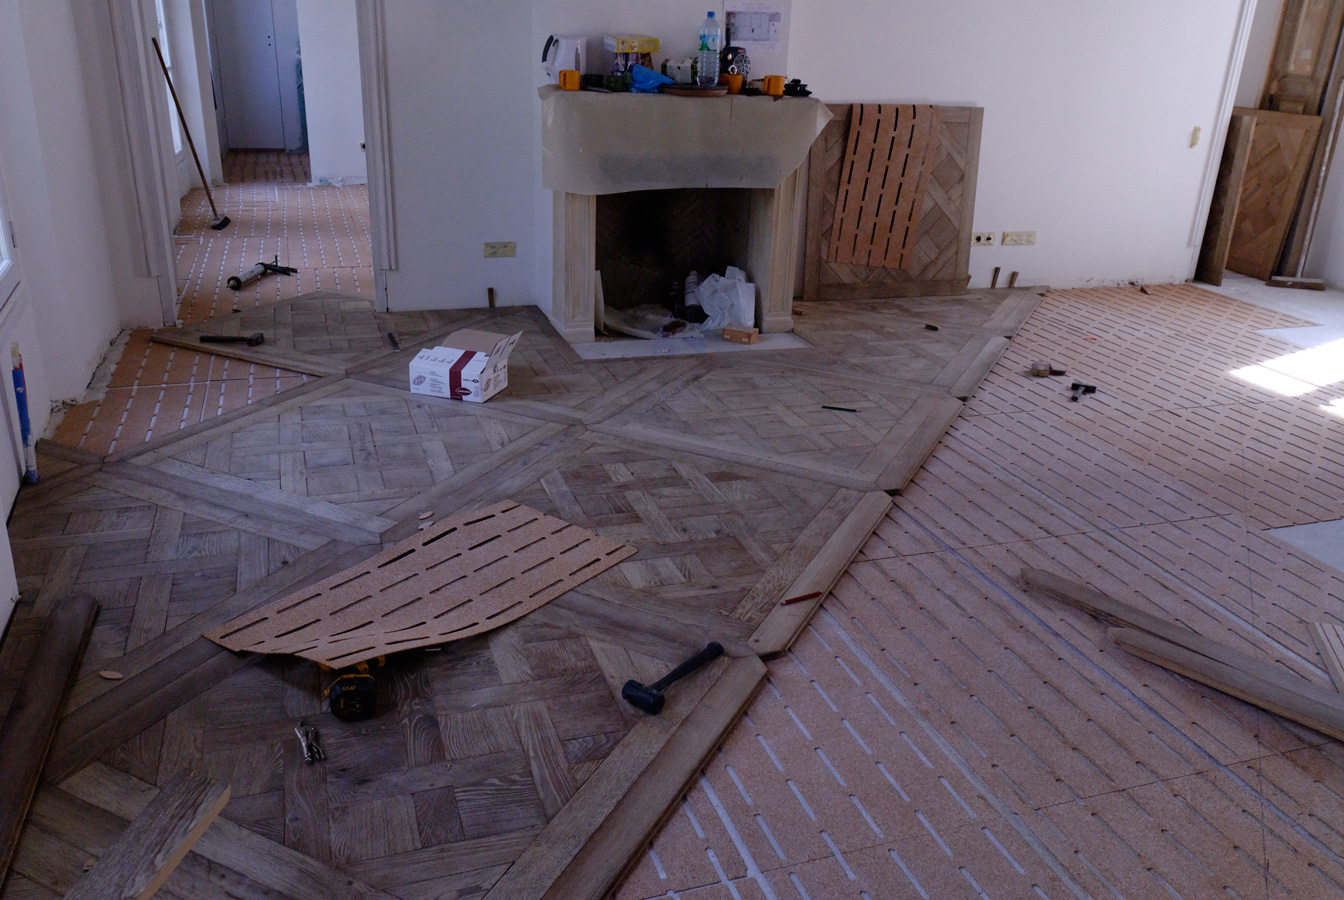 Panel parquet Versailles in oak grey washed